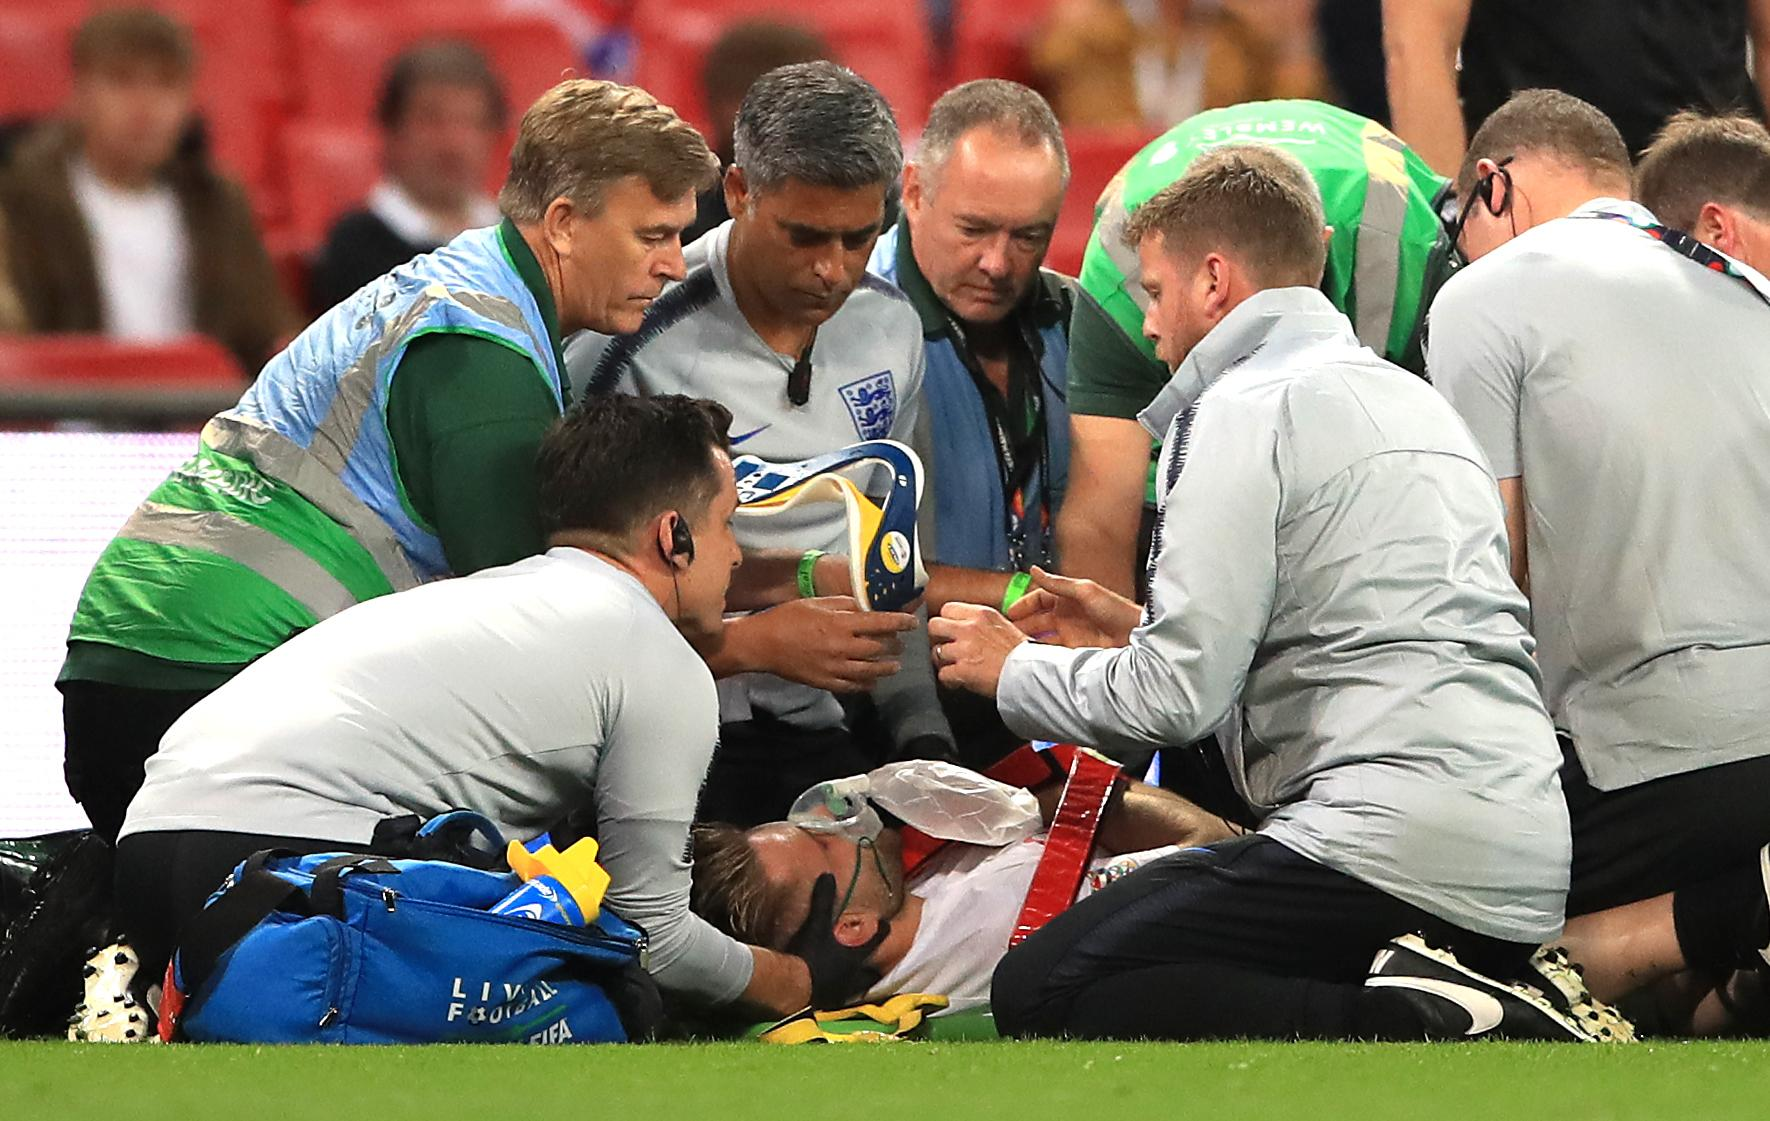 Luke Shaw suffered a nasty head injury during the match - and was carried off on a stretcher